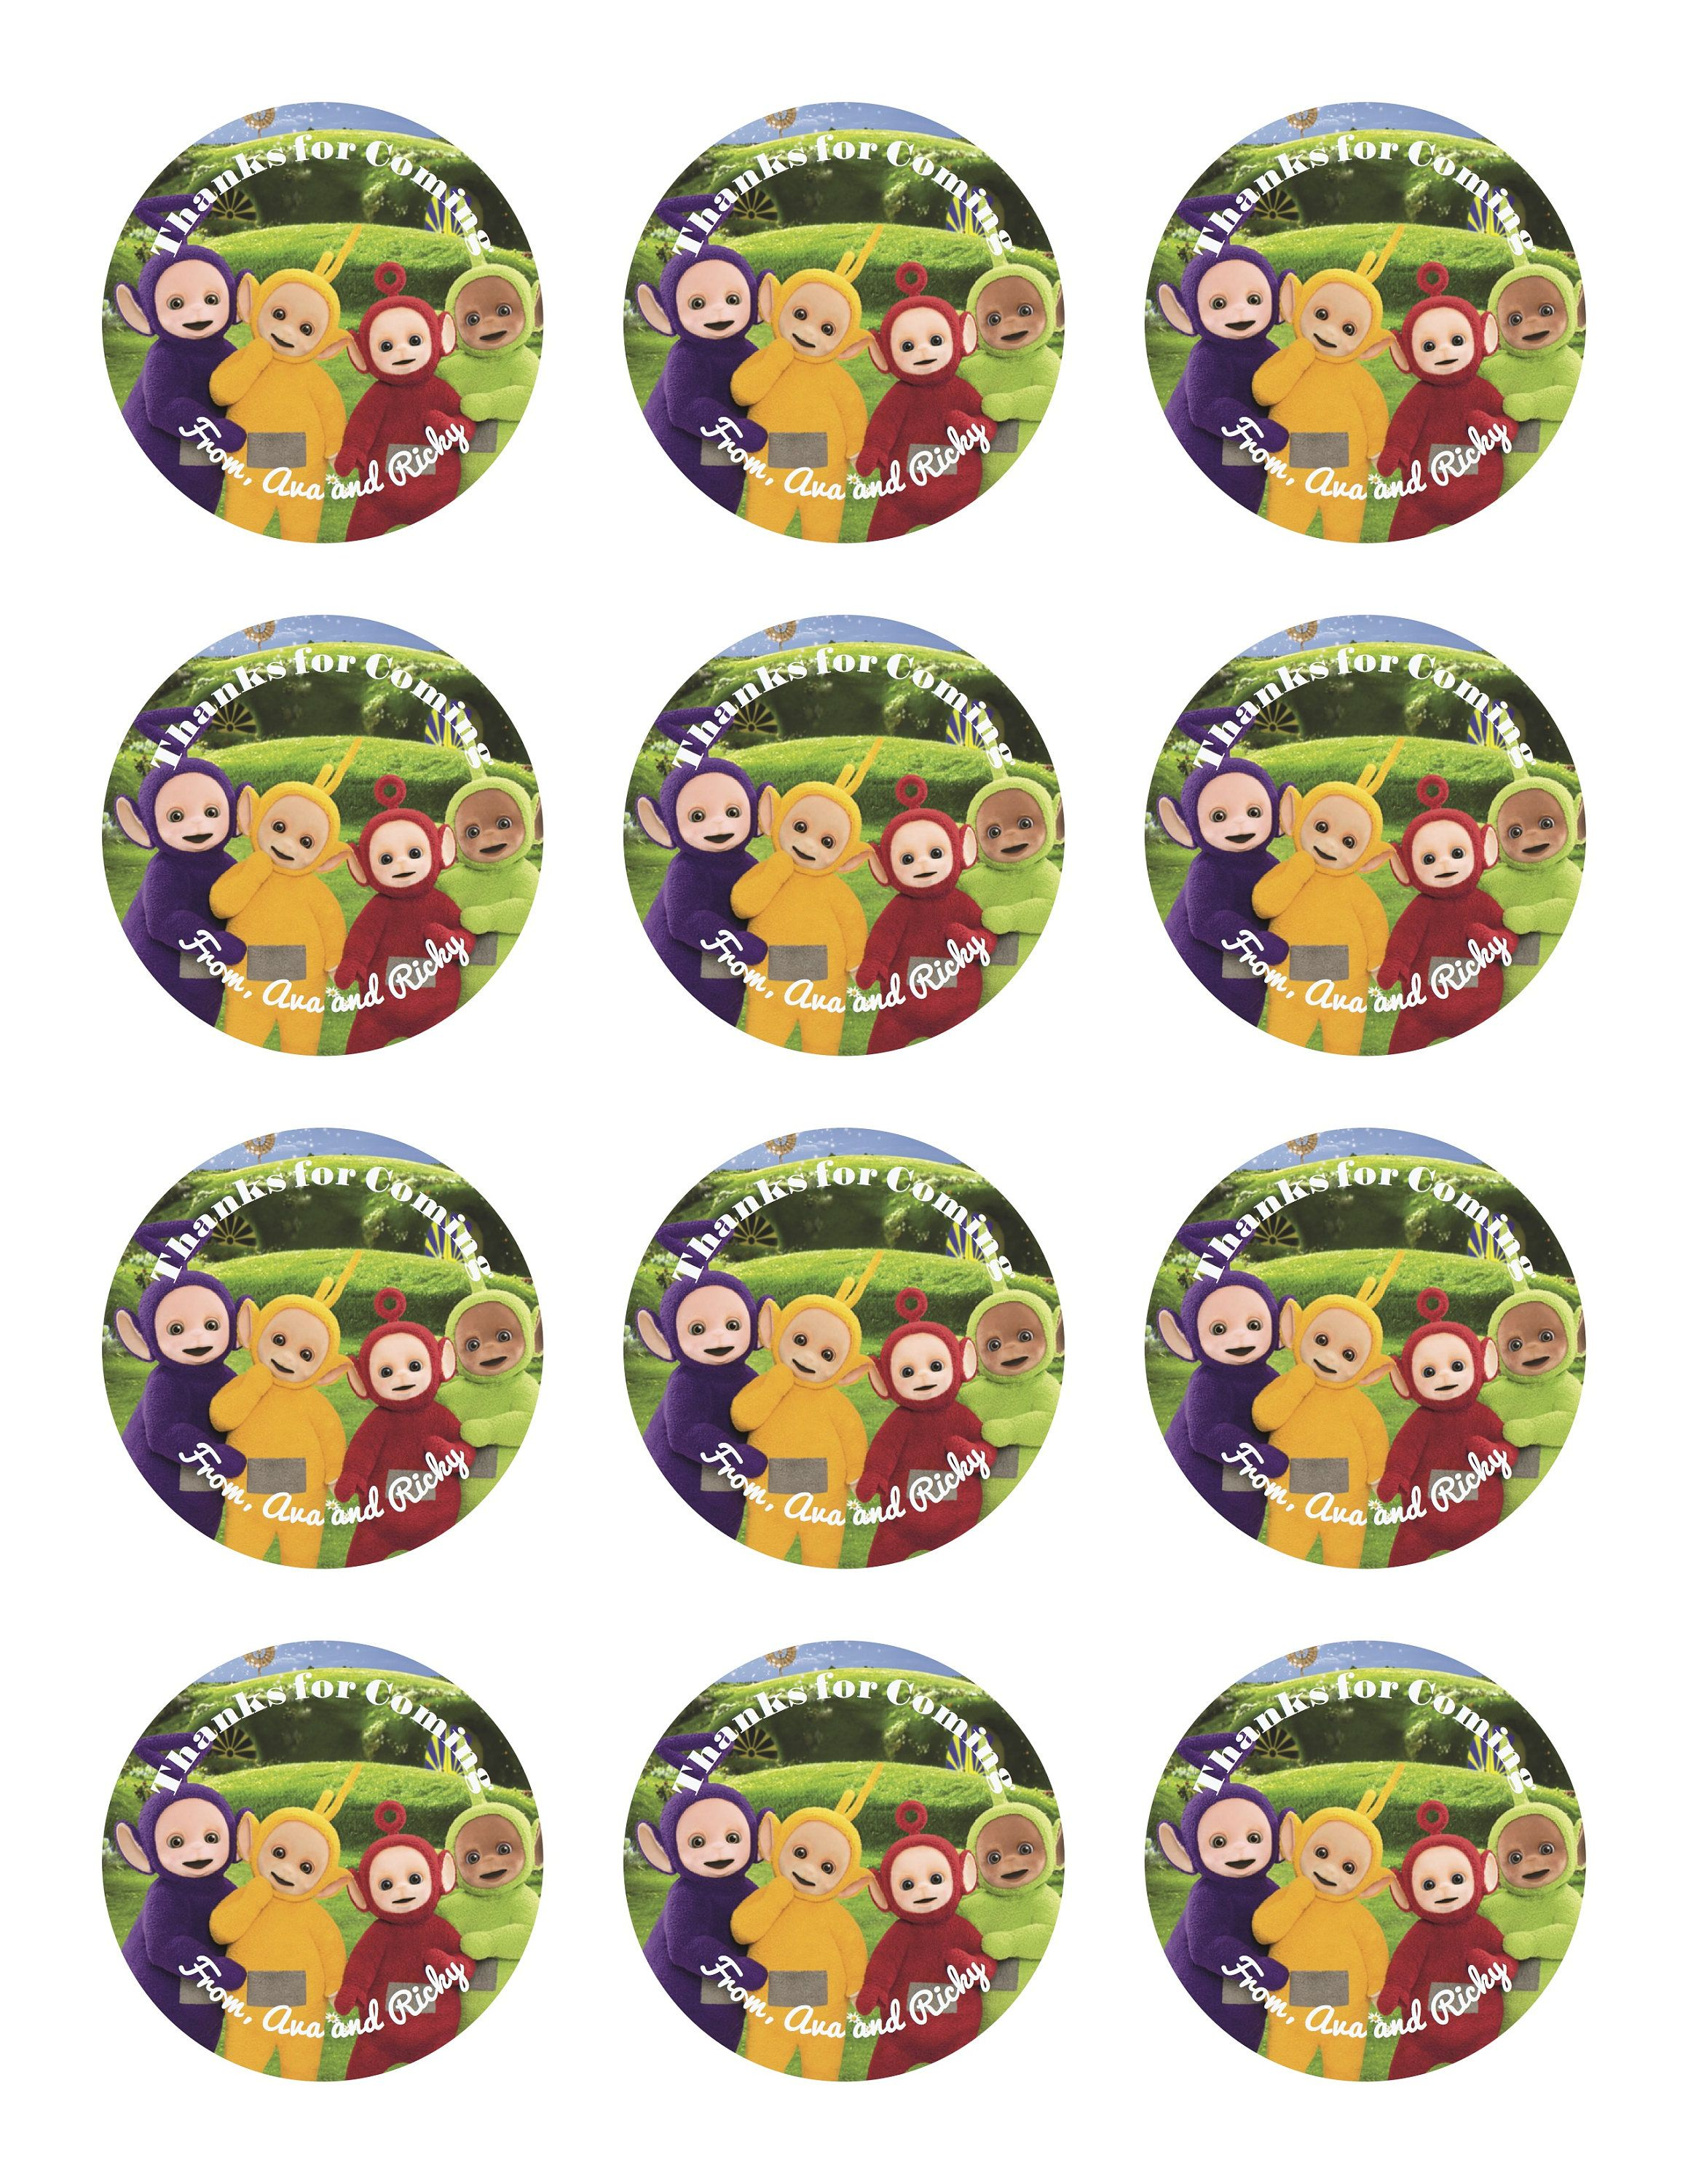 Teletubbies inspired personalized custom stickers cupcake toppers labels favor tags birthday party digital 2 inch round digital file diy by